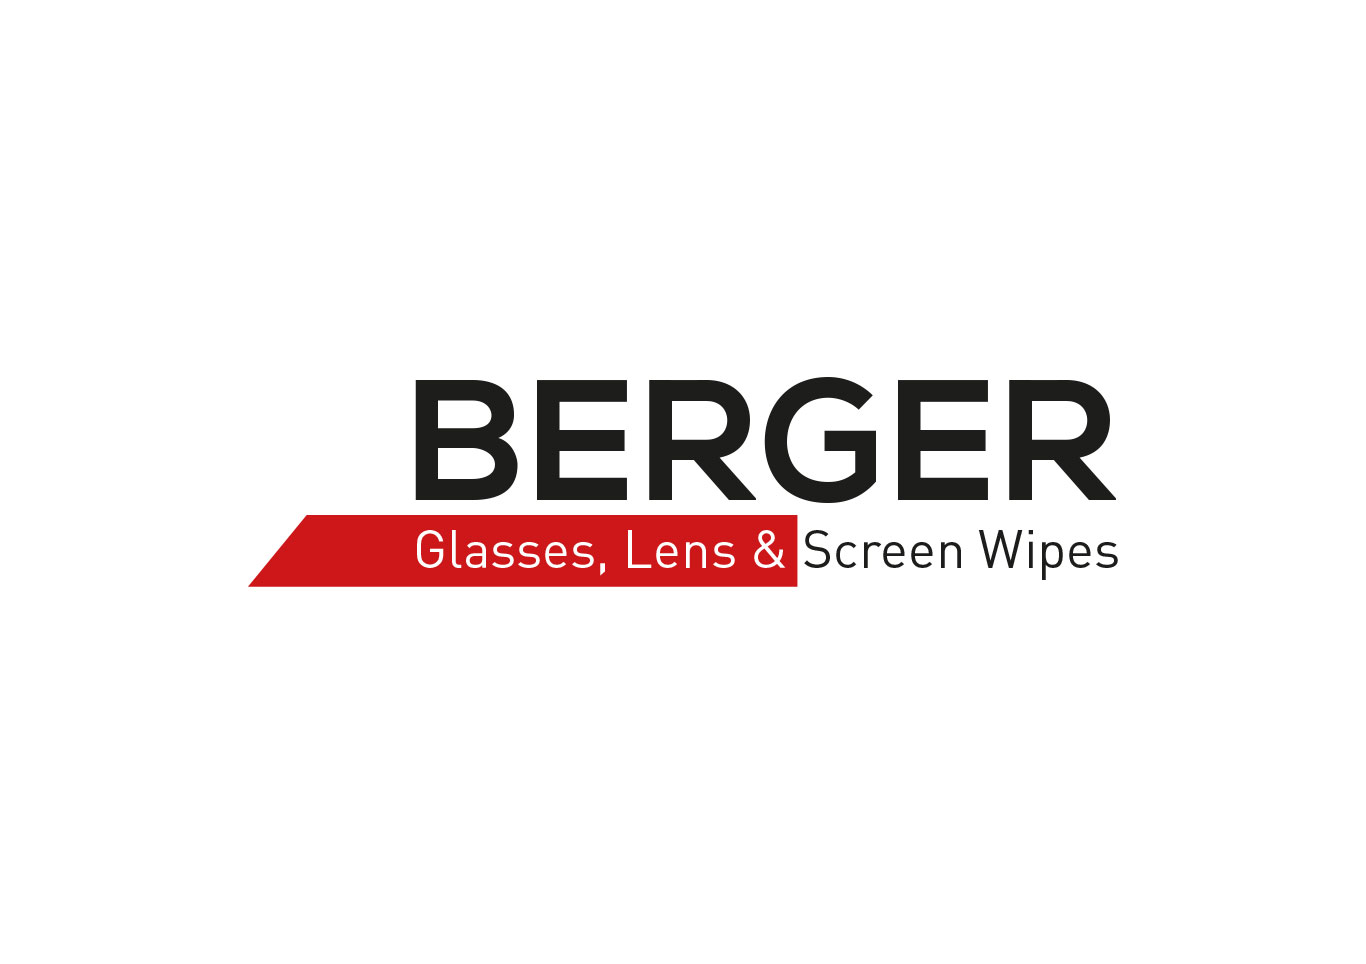 berger_wipes_logo